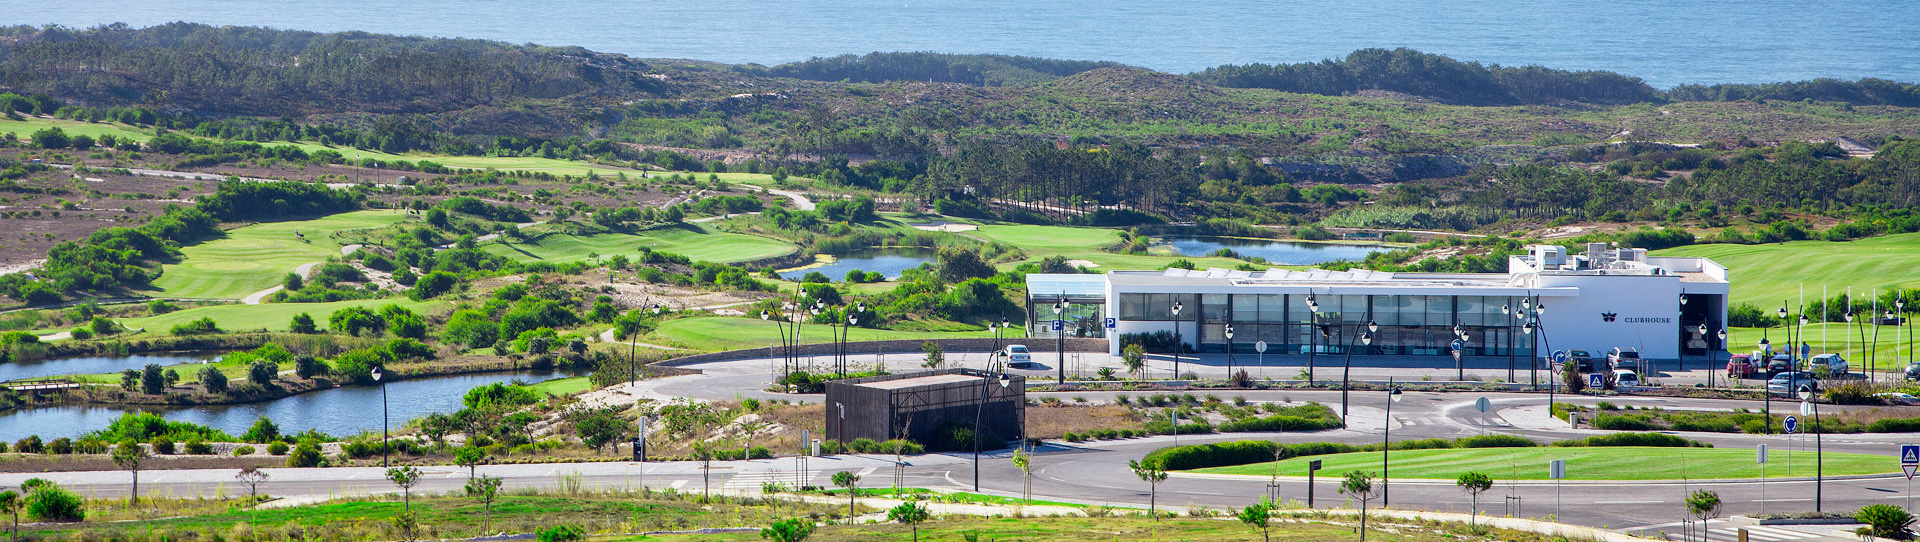 Evolutee Royal Obidos Hotel & Spa - Photo 3